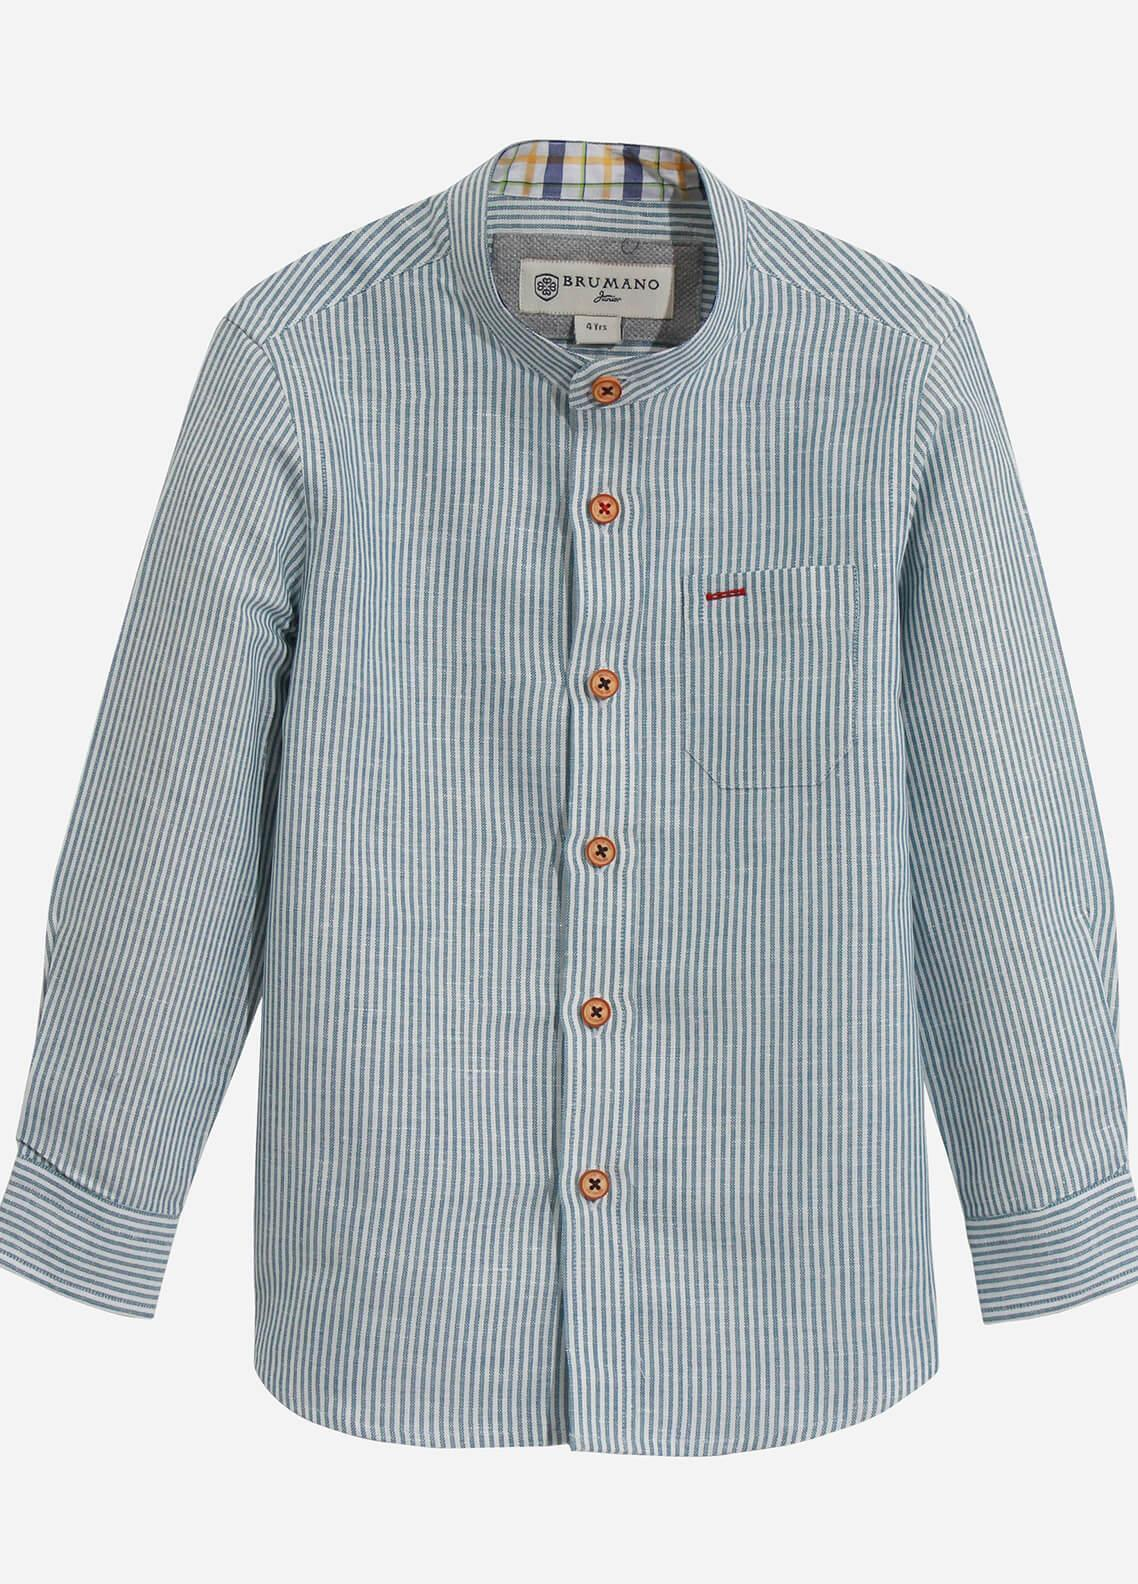 Brumano Cotton Casual Shirts for Boys - Turquoise BRM-625